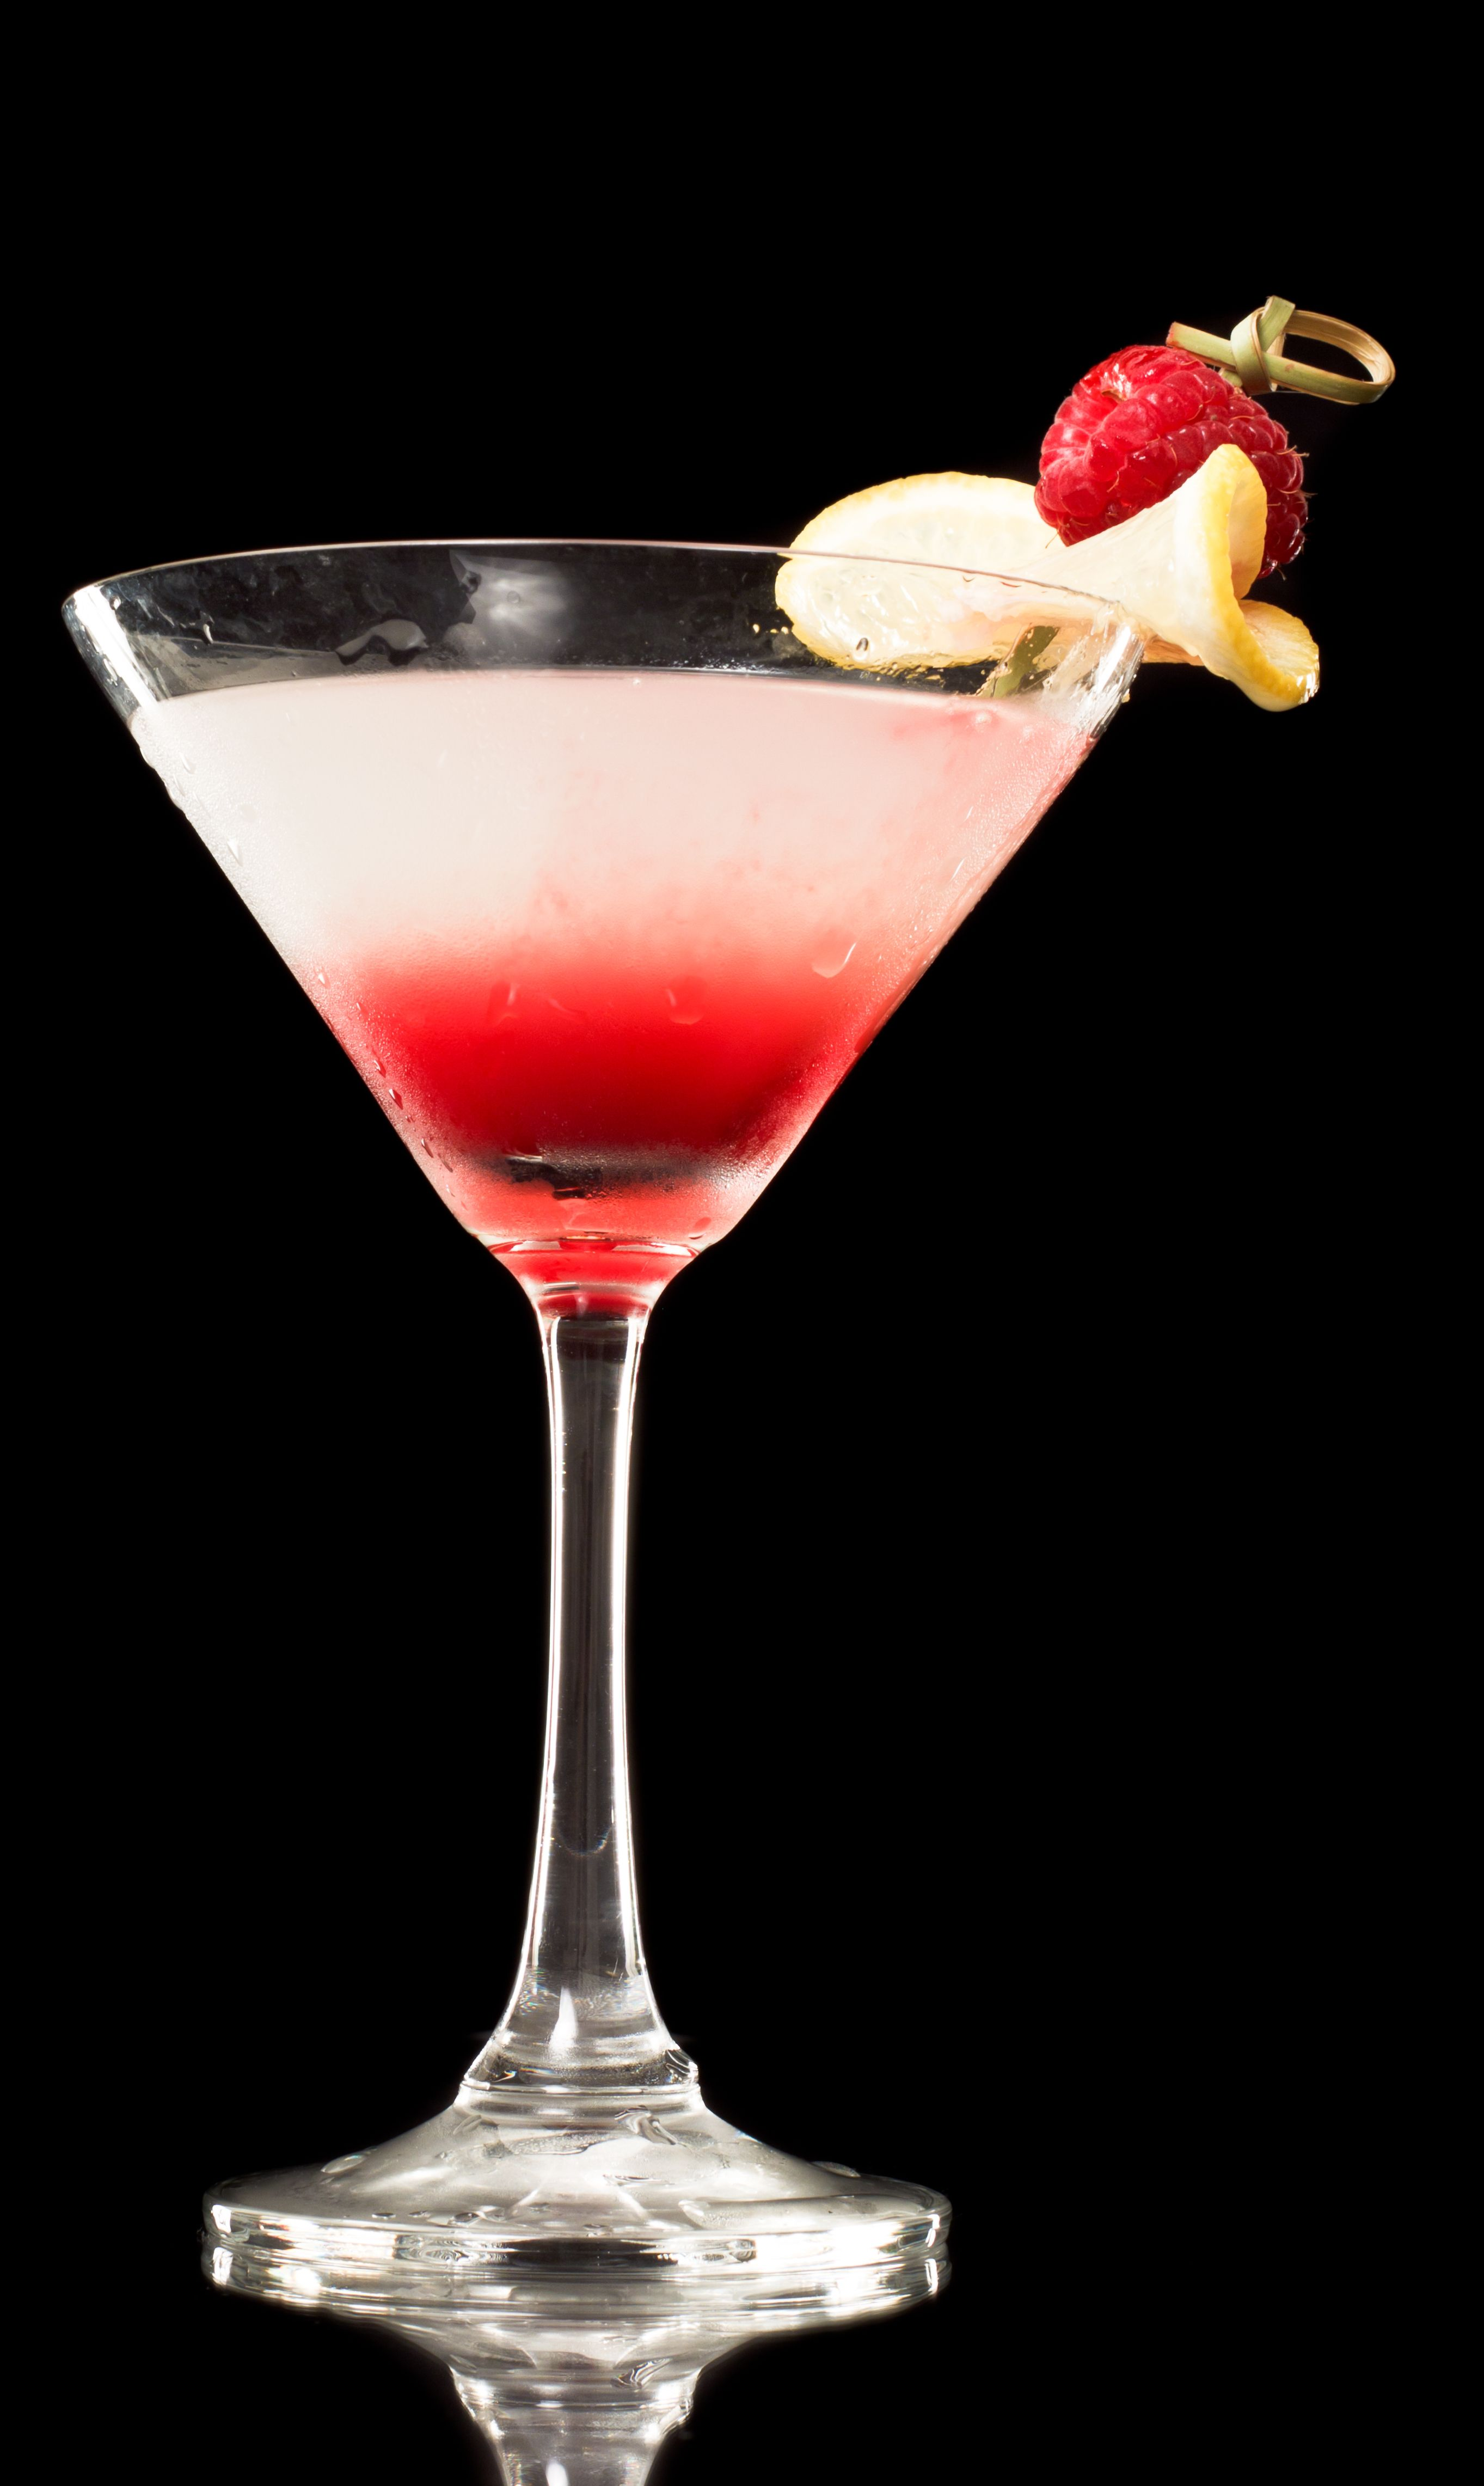 Raspberry Teani Low Carb Cocktails Low Carb Alcoholic Drinks Low Carb Drinks